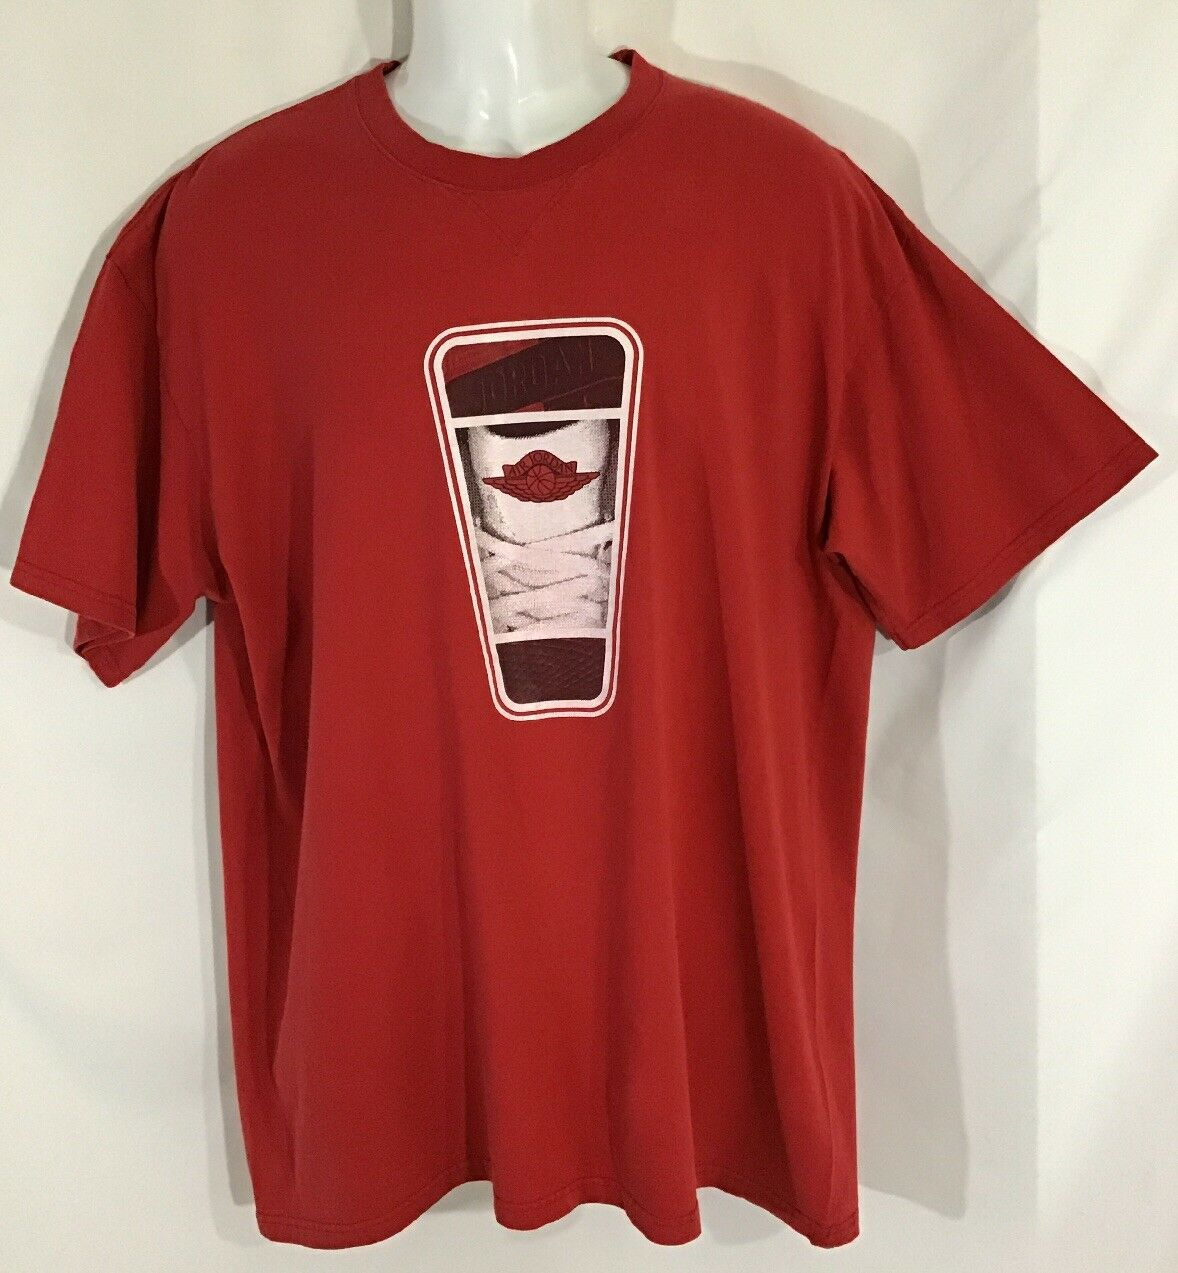 86b3606ab827 Air Jordan Tshirt WINGS Mike 23 Rare 90 s OG Red Size XL Vintage ...